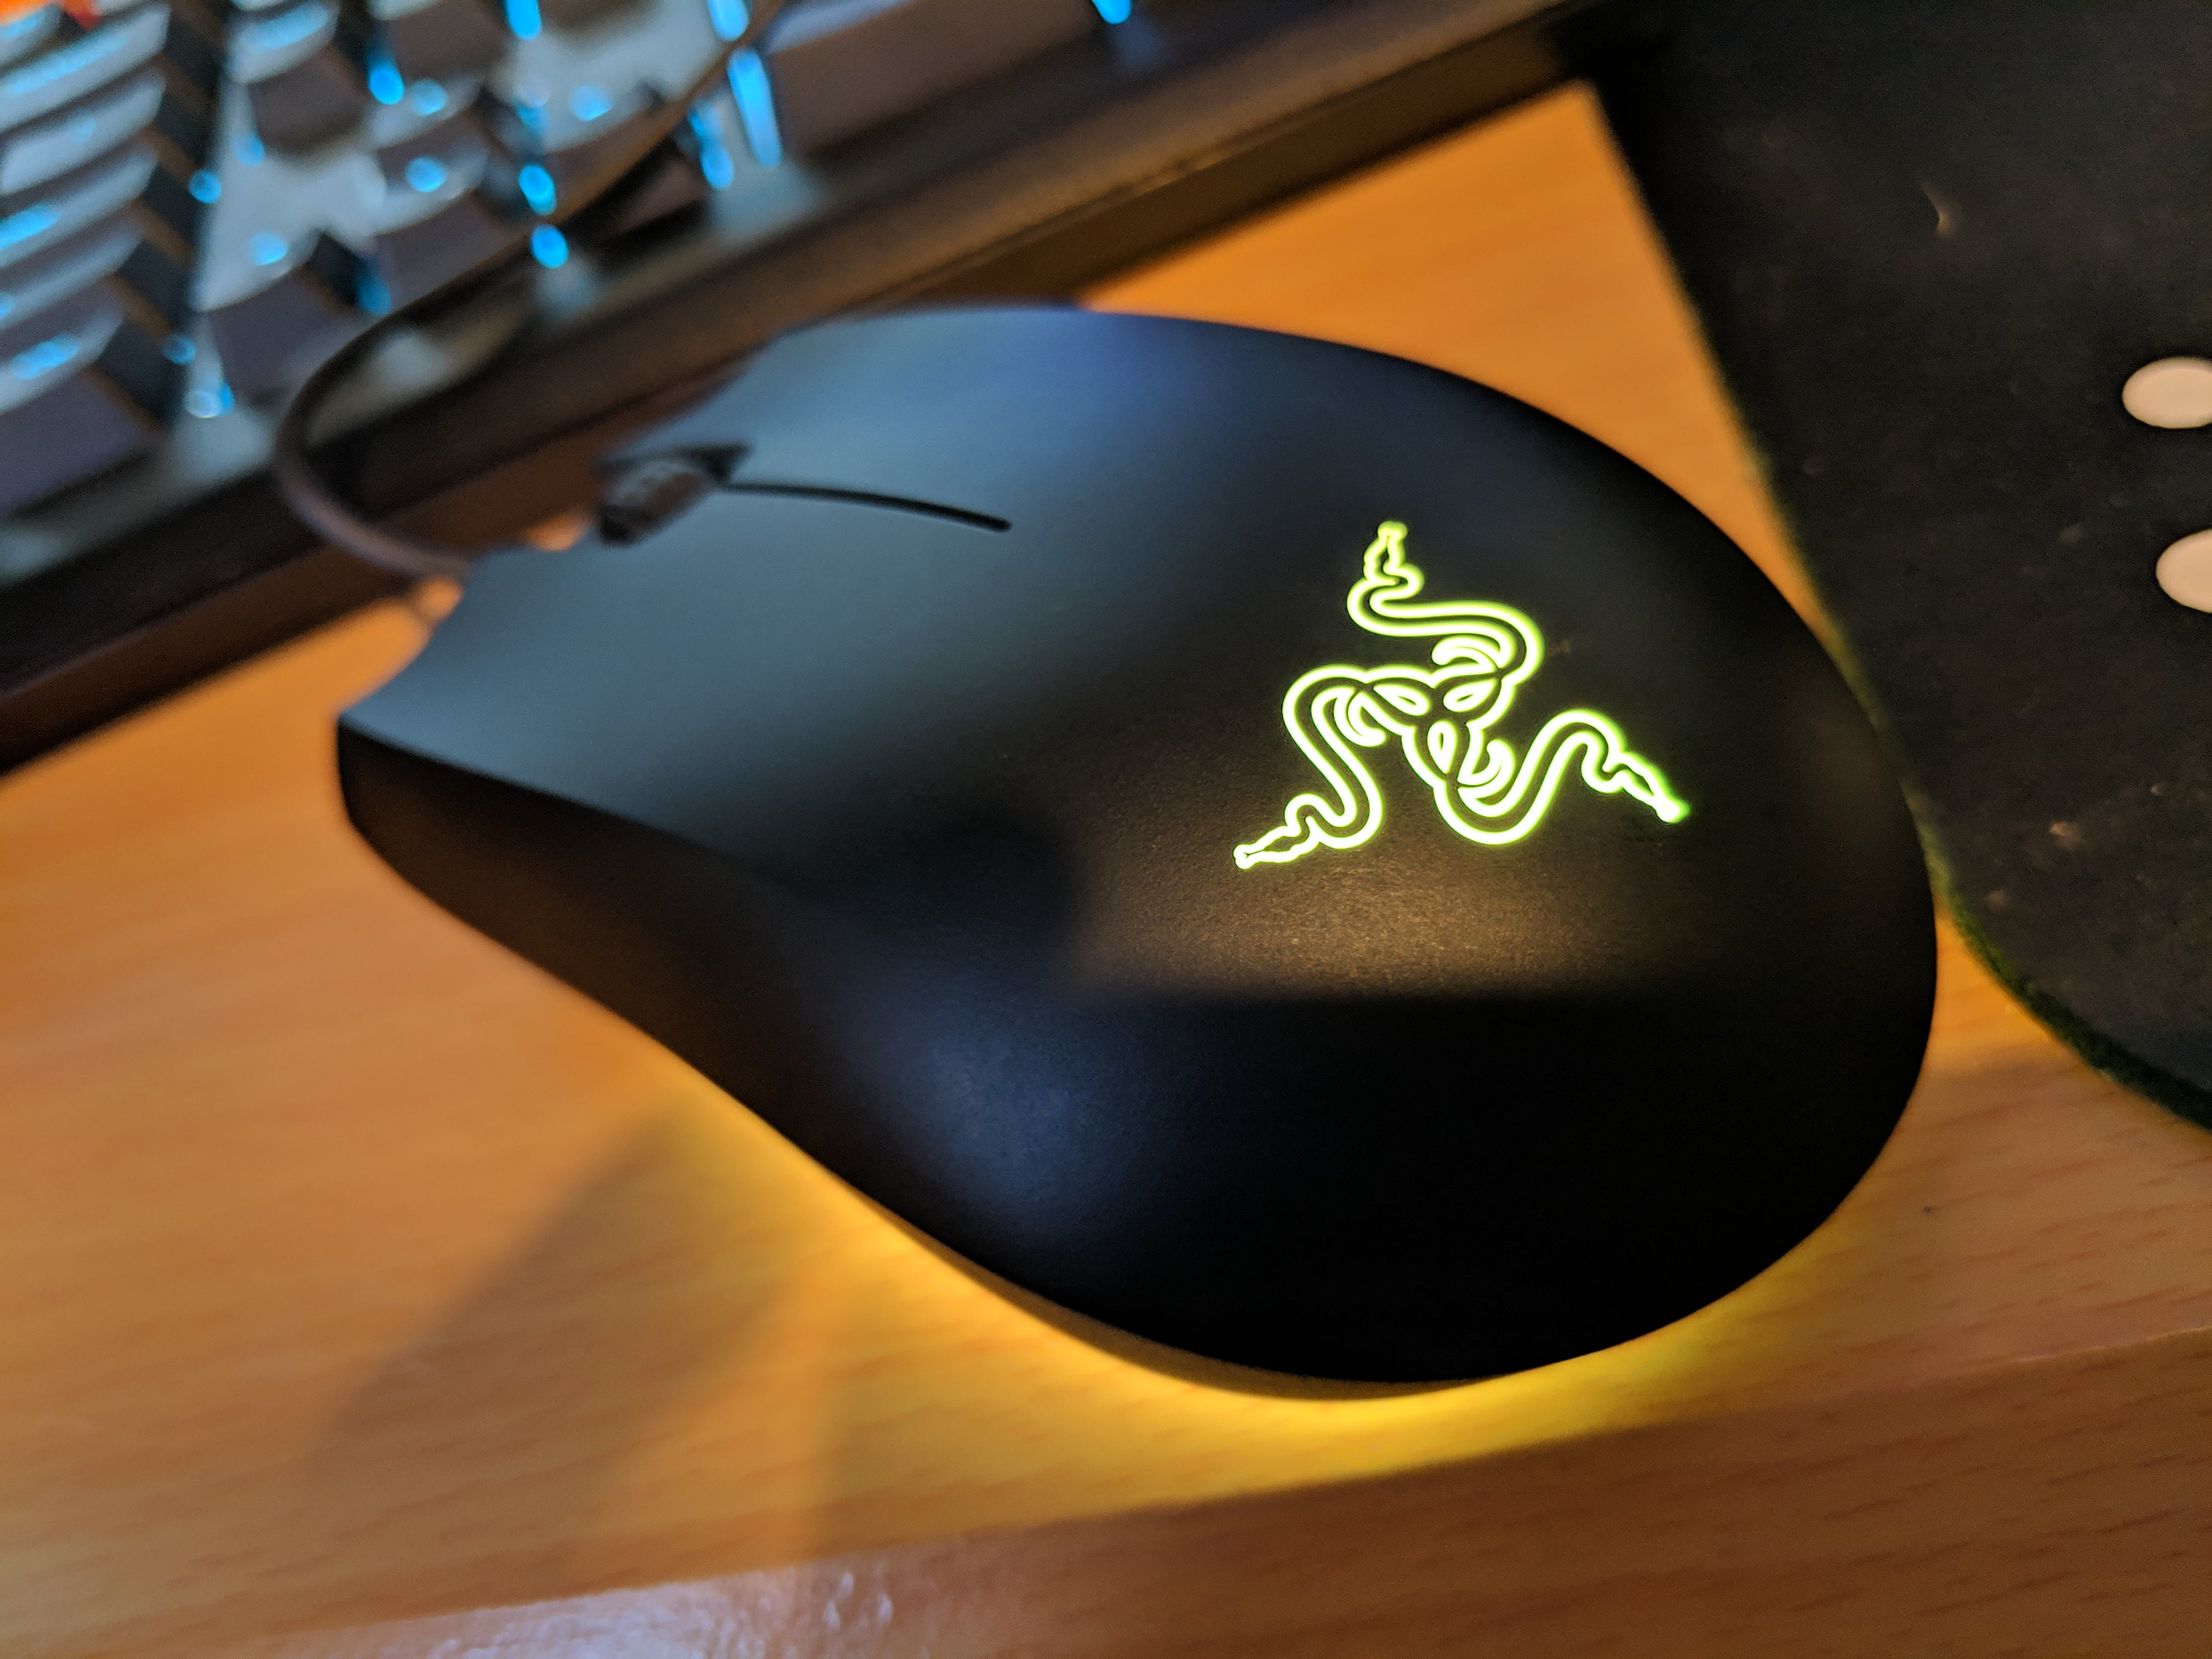 Razer Abyssus Essential Gaming Mouse Review Trusted Reviews